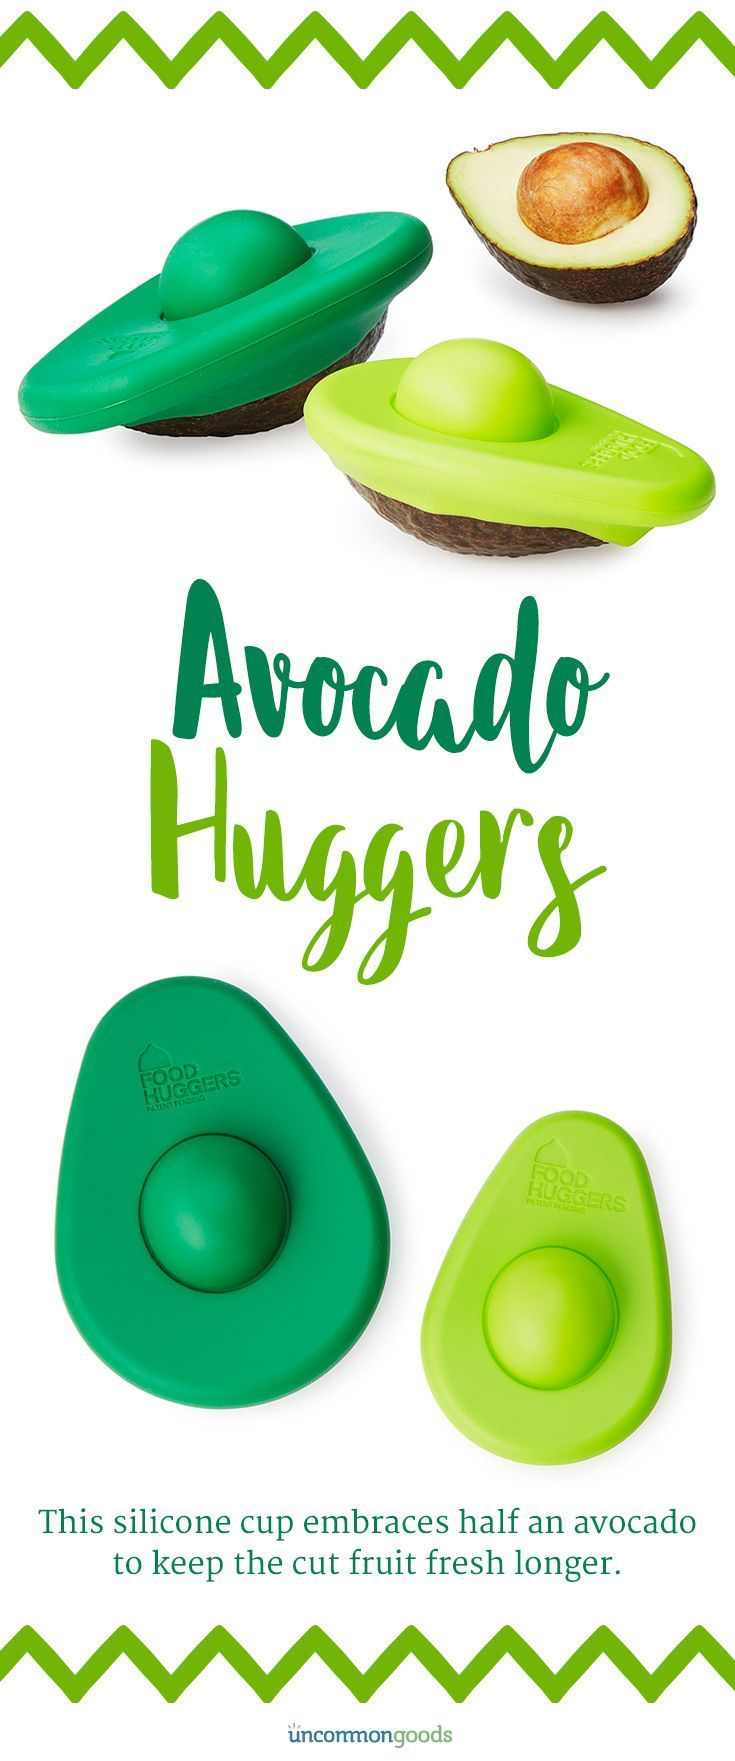 Funny grab shaped multi purpose fruits vegetable peeler bottle opener - This Silicone Cup Embraces Half An Avocado To Keep The Cut Fruit Fresh Longer